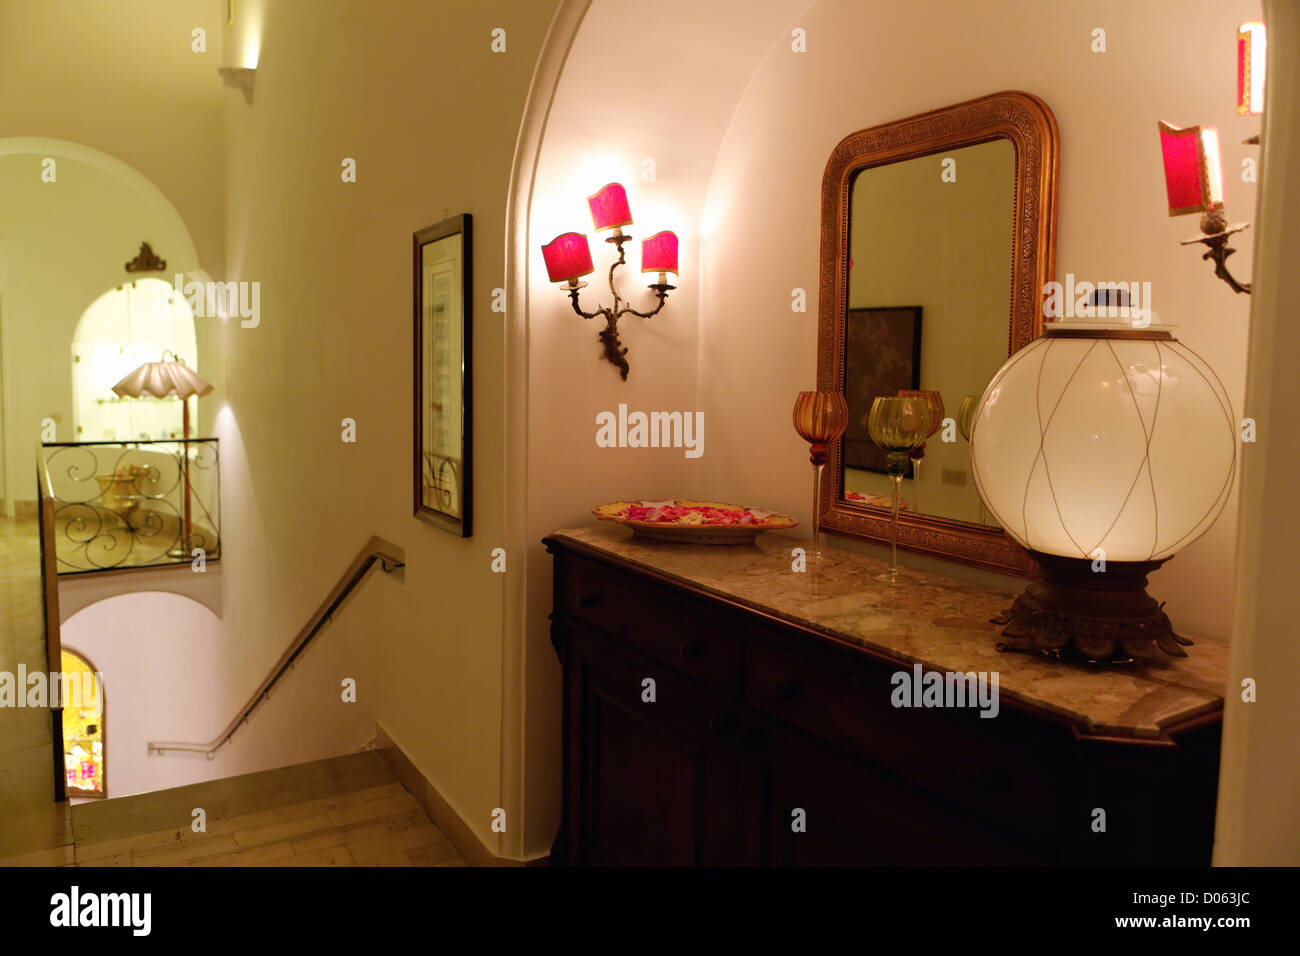 Hotel Interior with Stairway and Antique Furniture, Hotel Poseidon, Posiatano, Campania, Italy - Stock Image